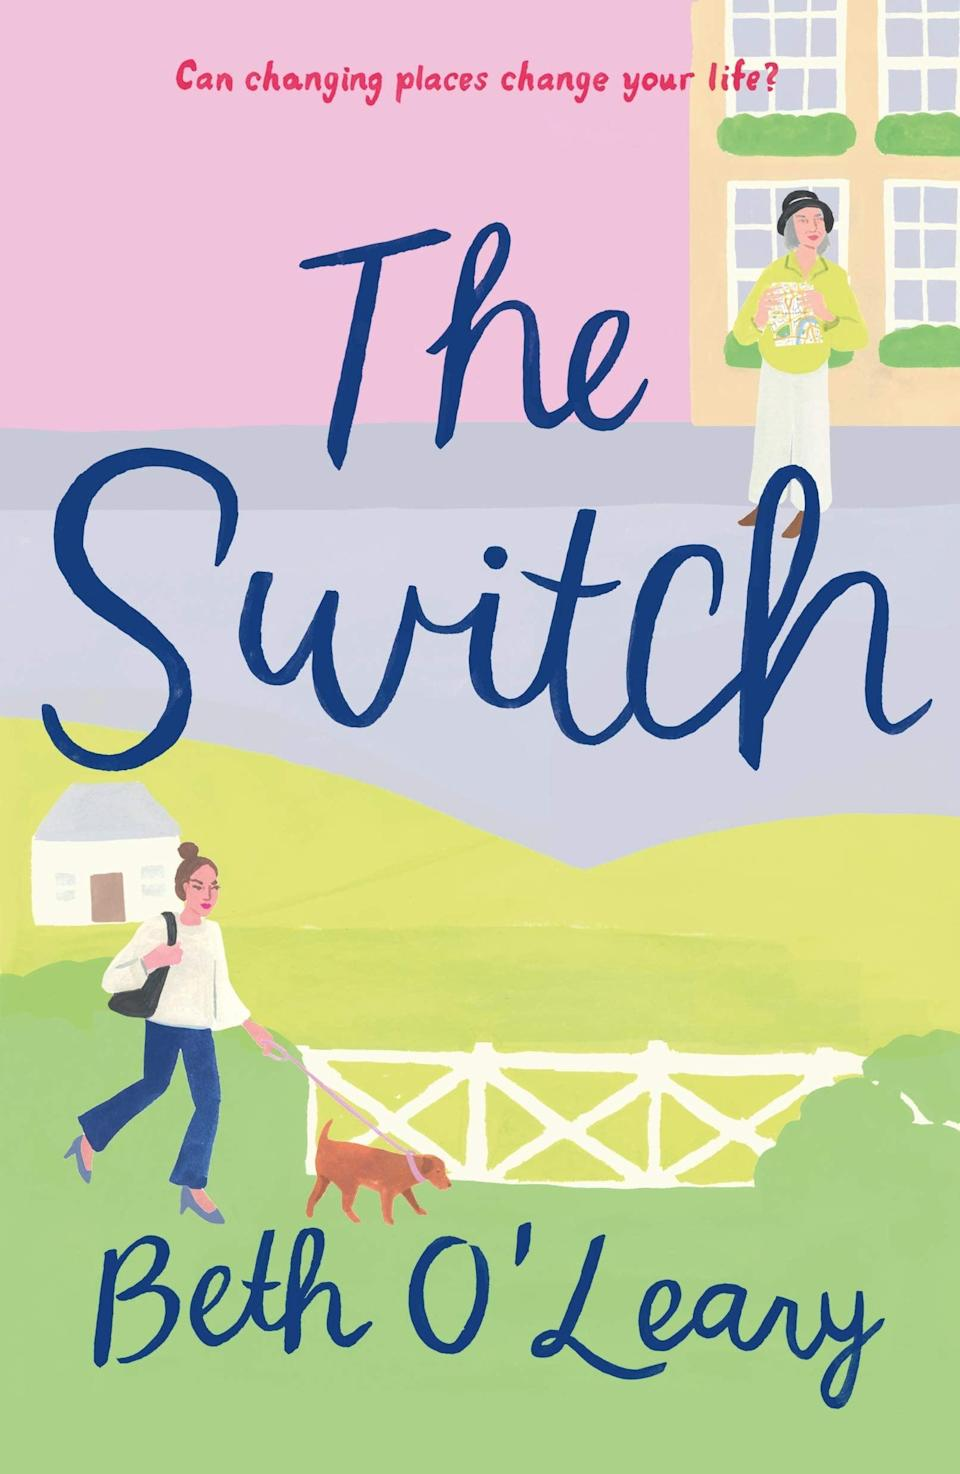 <p>Twenty-something Leena and her nearly-80-year-old grandmother Eileen decide to swap lives in <span><strong>The Switch</strong> by Beth O'Leary</span> ($13). Both reeling from a sudden death in the family and needing to regroup, Leena decides to escape to her grandmother's cottage in a quaint English village to try small town living, while Eileen hops down to London to stay in Leena's flat and experience the big city. In the process, they each find themselves - and love where they least expect it.</p> <p>This story reminds me of the film <strong>The Holiday</strong>, but instead of two internet strangers switching places, it's two women from the same family. In addition to navigating new environments, there's also the generational difference between Leena and Eileen that brings about some funny situations.</p>